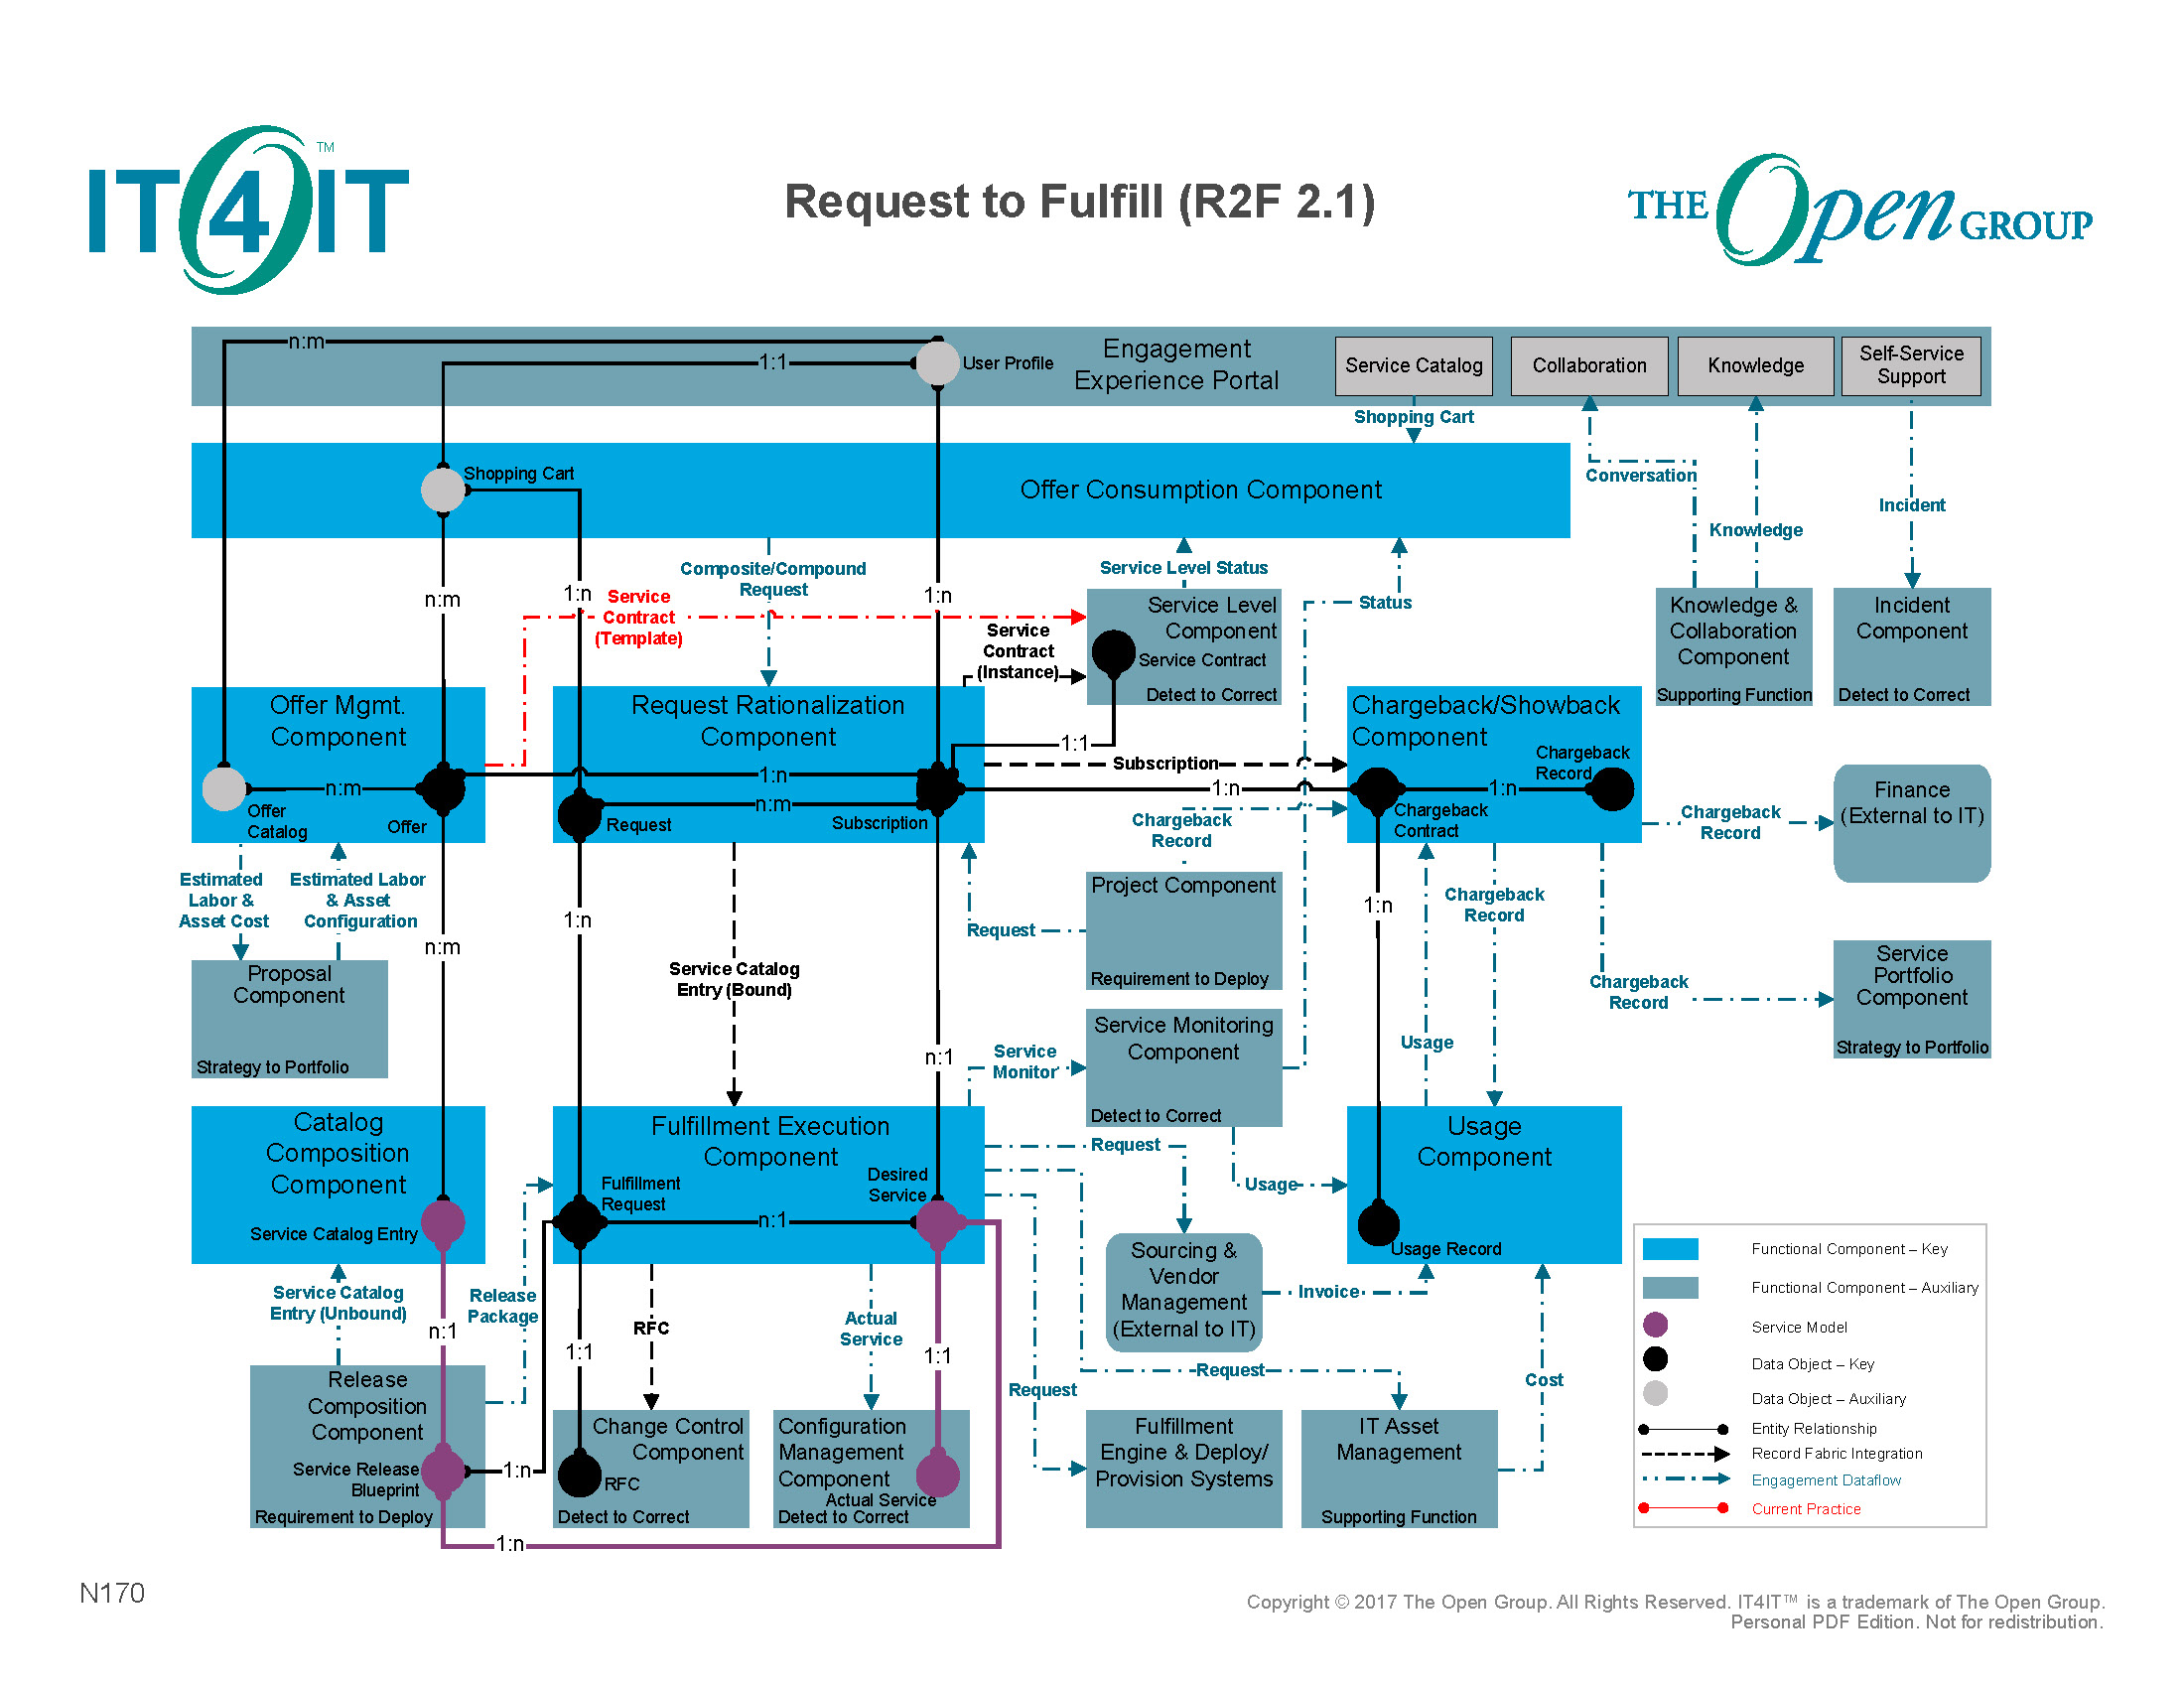 Request to Fullfill: Value Stream aus IT4IT